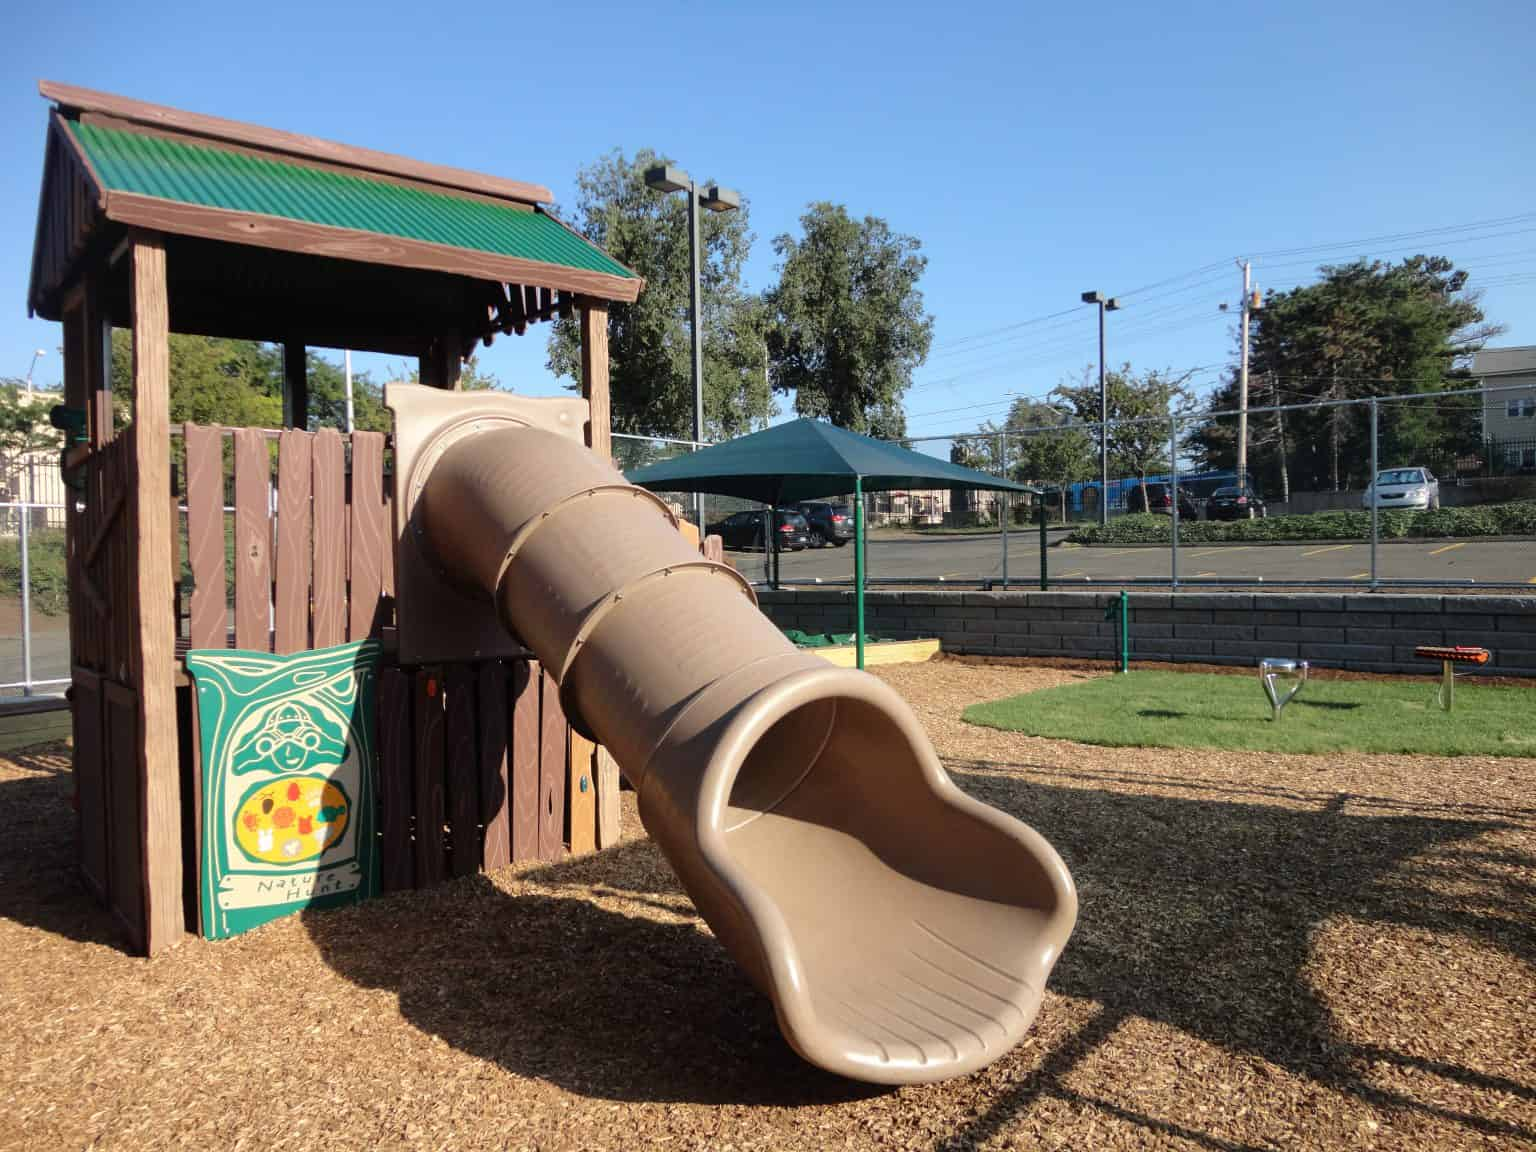 phyllis-bodel-daycare-playground-new-haven-ct_17941373489_o-1536x1152